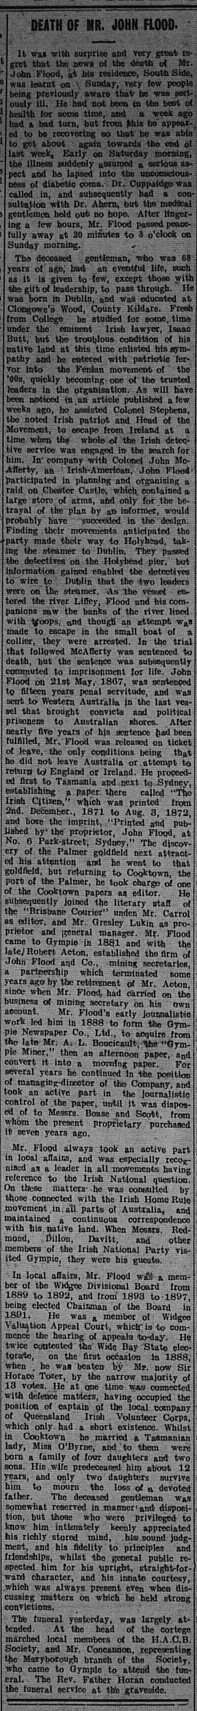 Gympie Times, Tuesday, August 24, 1909 p. 3 Death of Mr John Flood